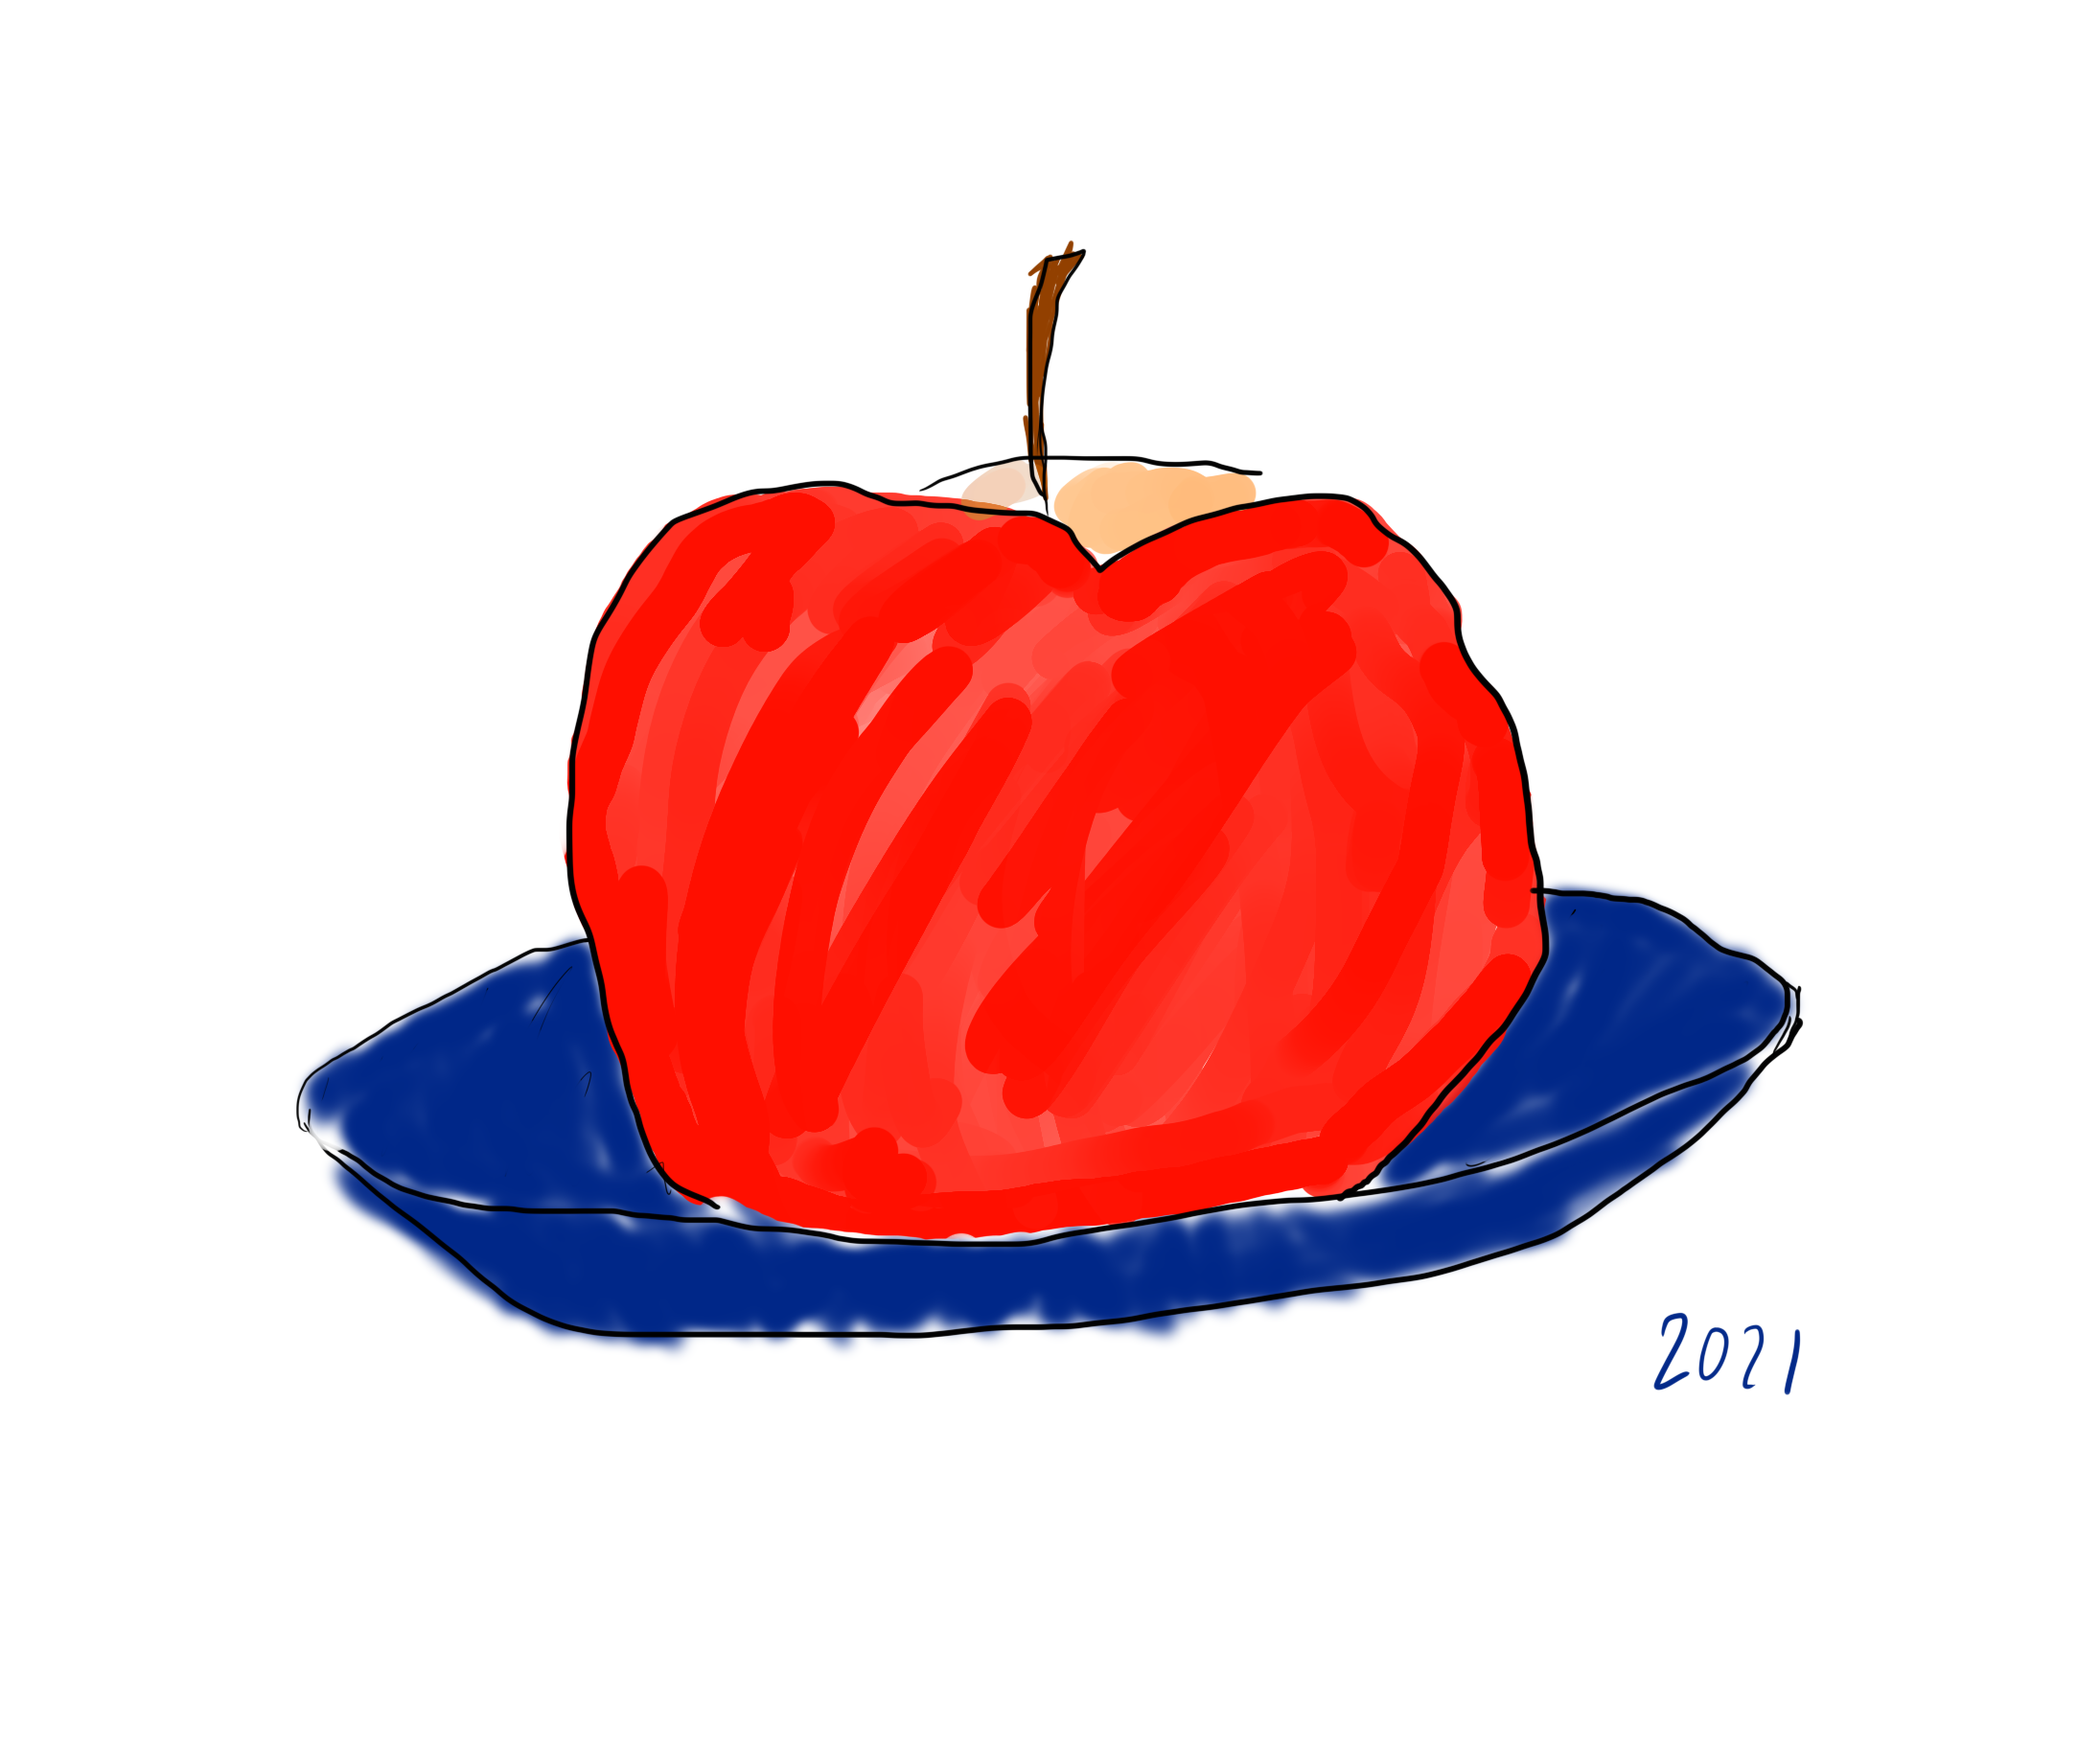 A drawing of an apple on a blue plate